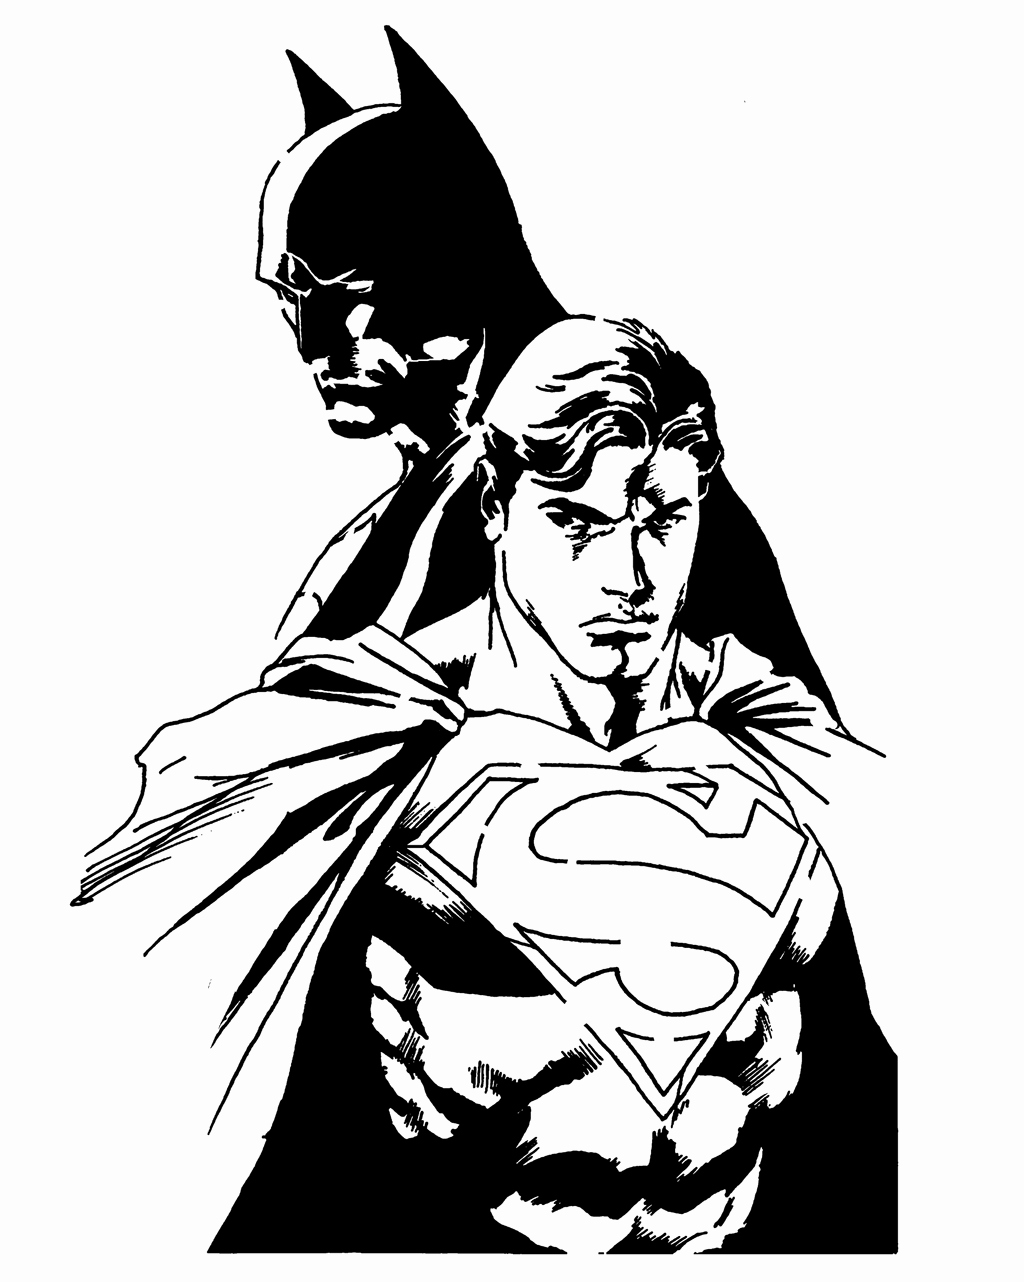 Batman Stencil Art Lovely Superman and Batman Stencil by Joedson On Deviantart